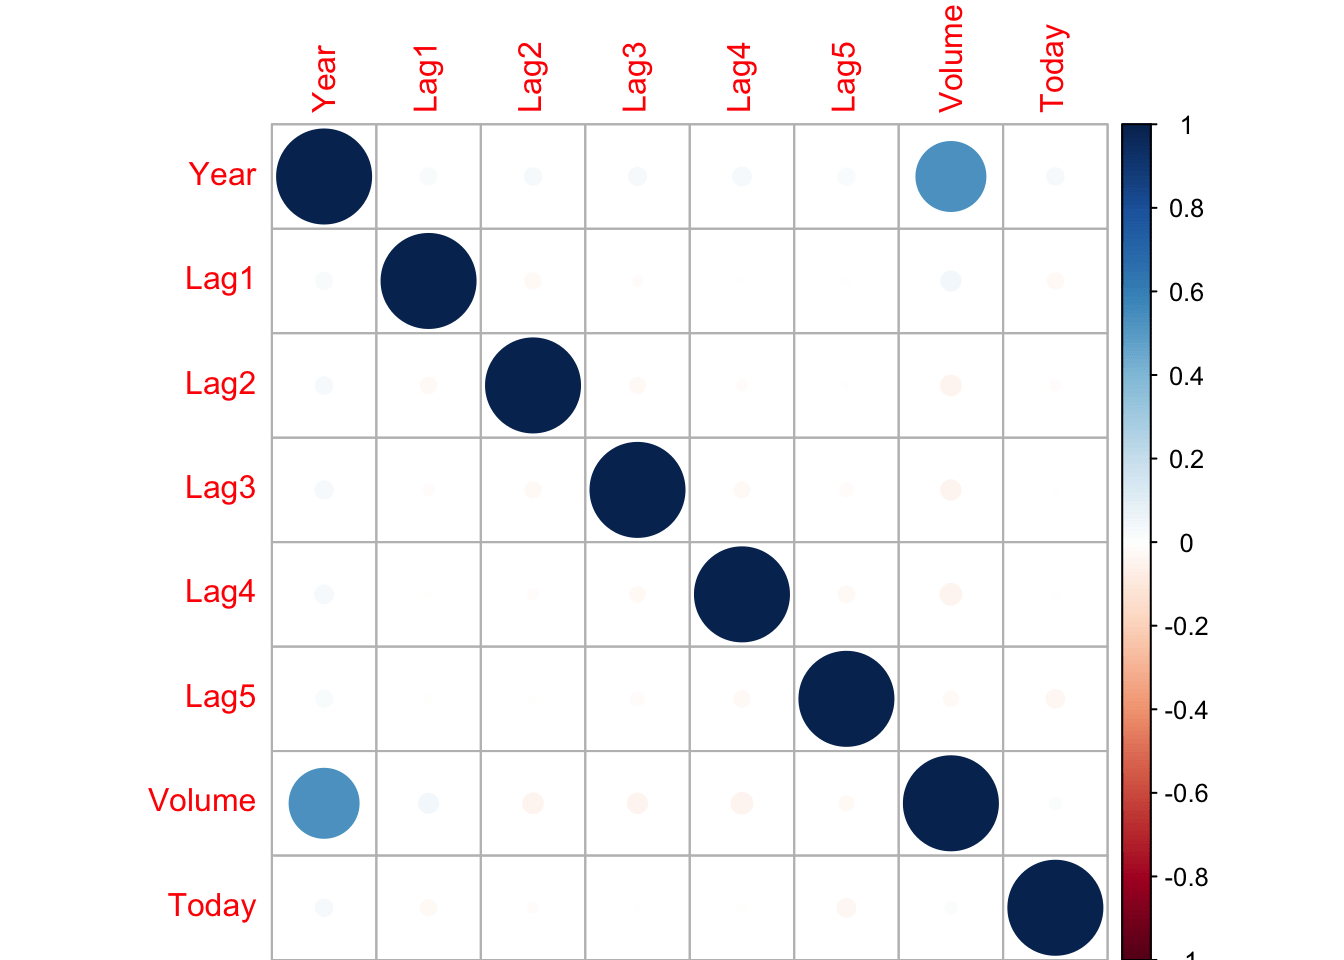 A Dot Representation Was Used Where Blue Represents Positive Correlation  And Red Negative. The Larger The Dot The Larger The Correlation.